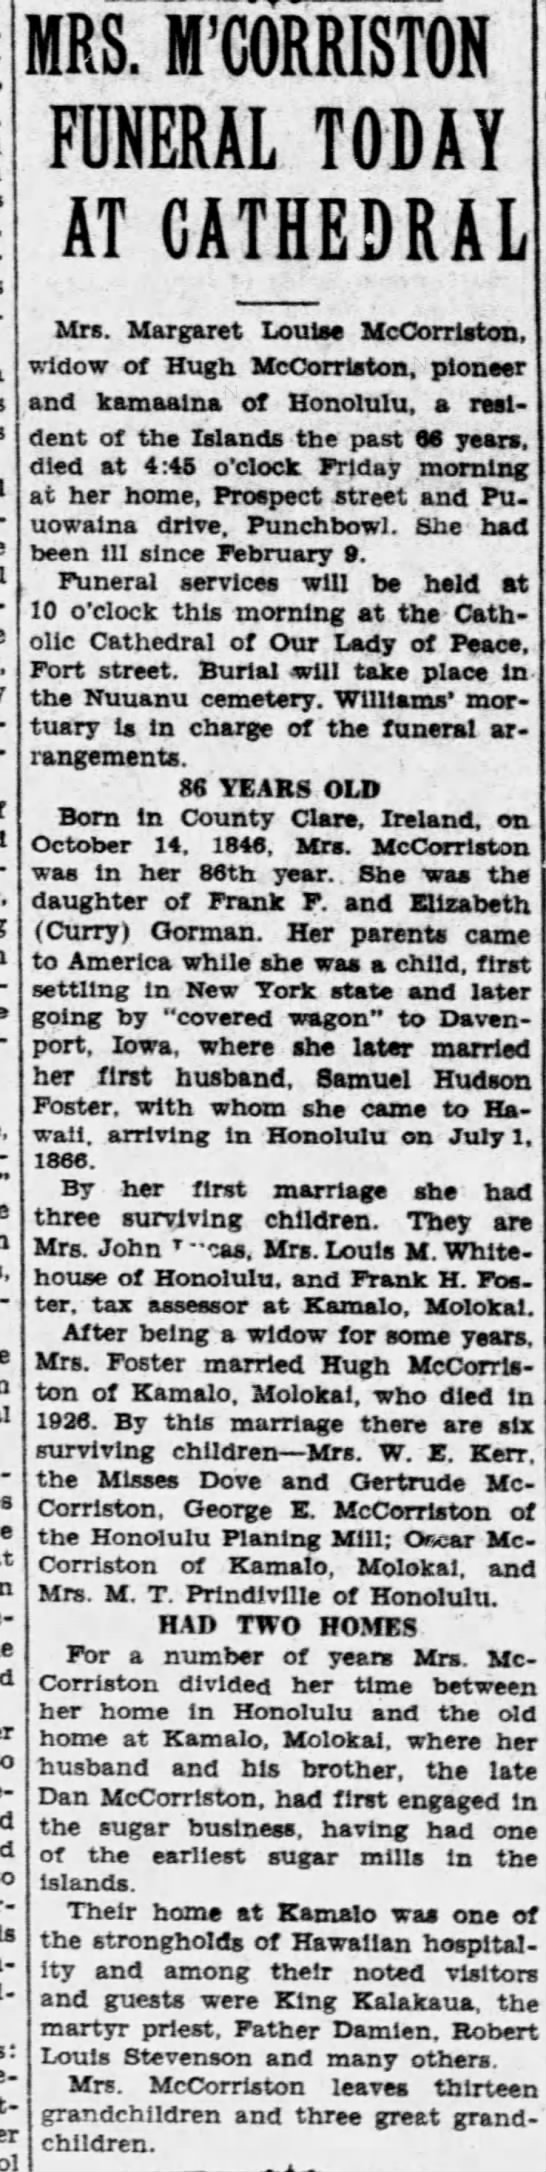 Obituary of Margaret Louise Gorman Foster McCorriston, 1932